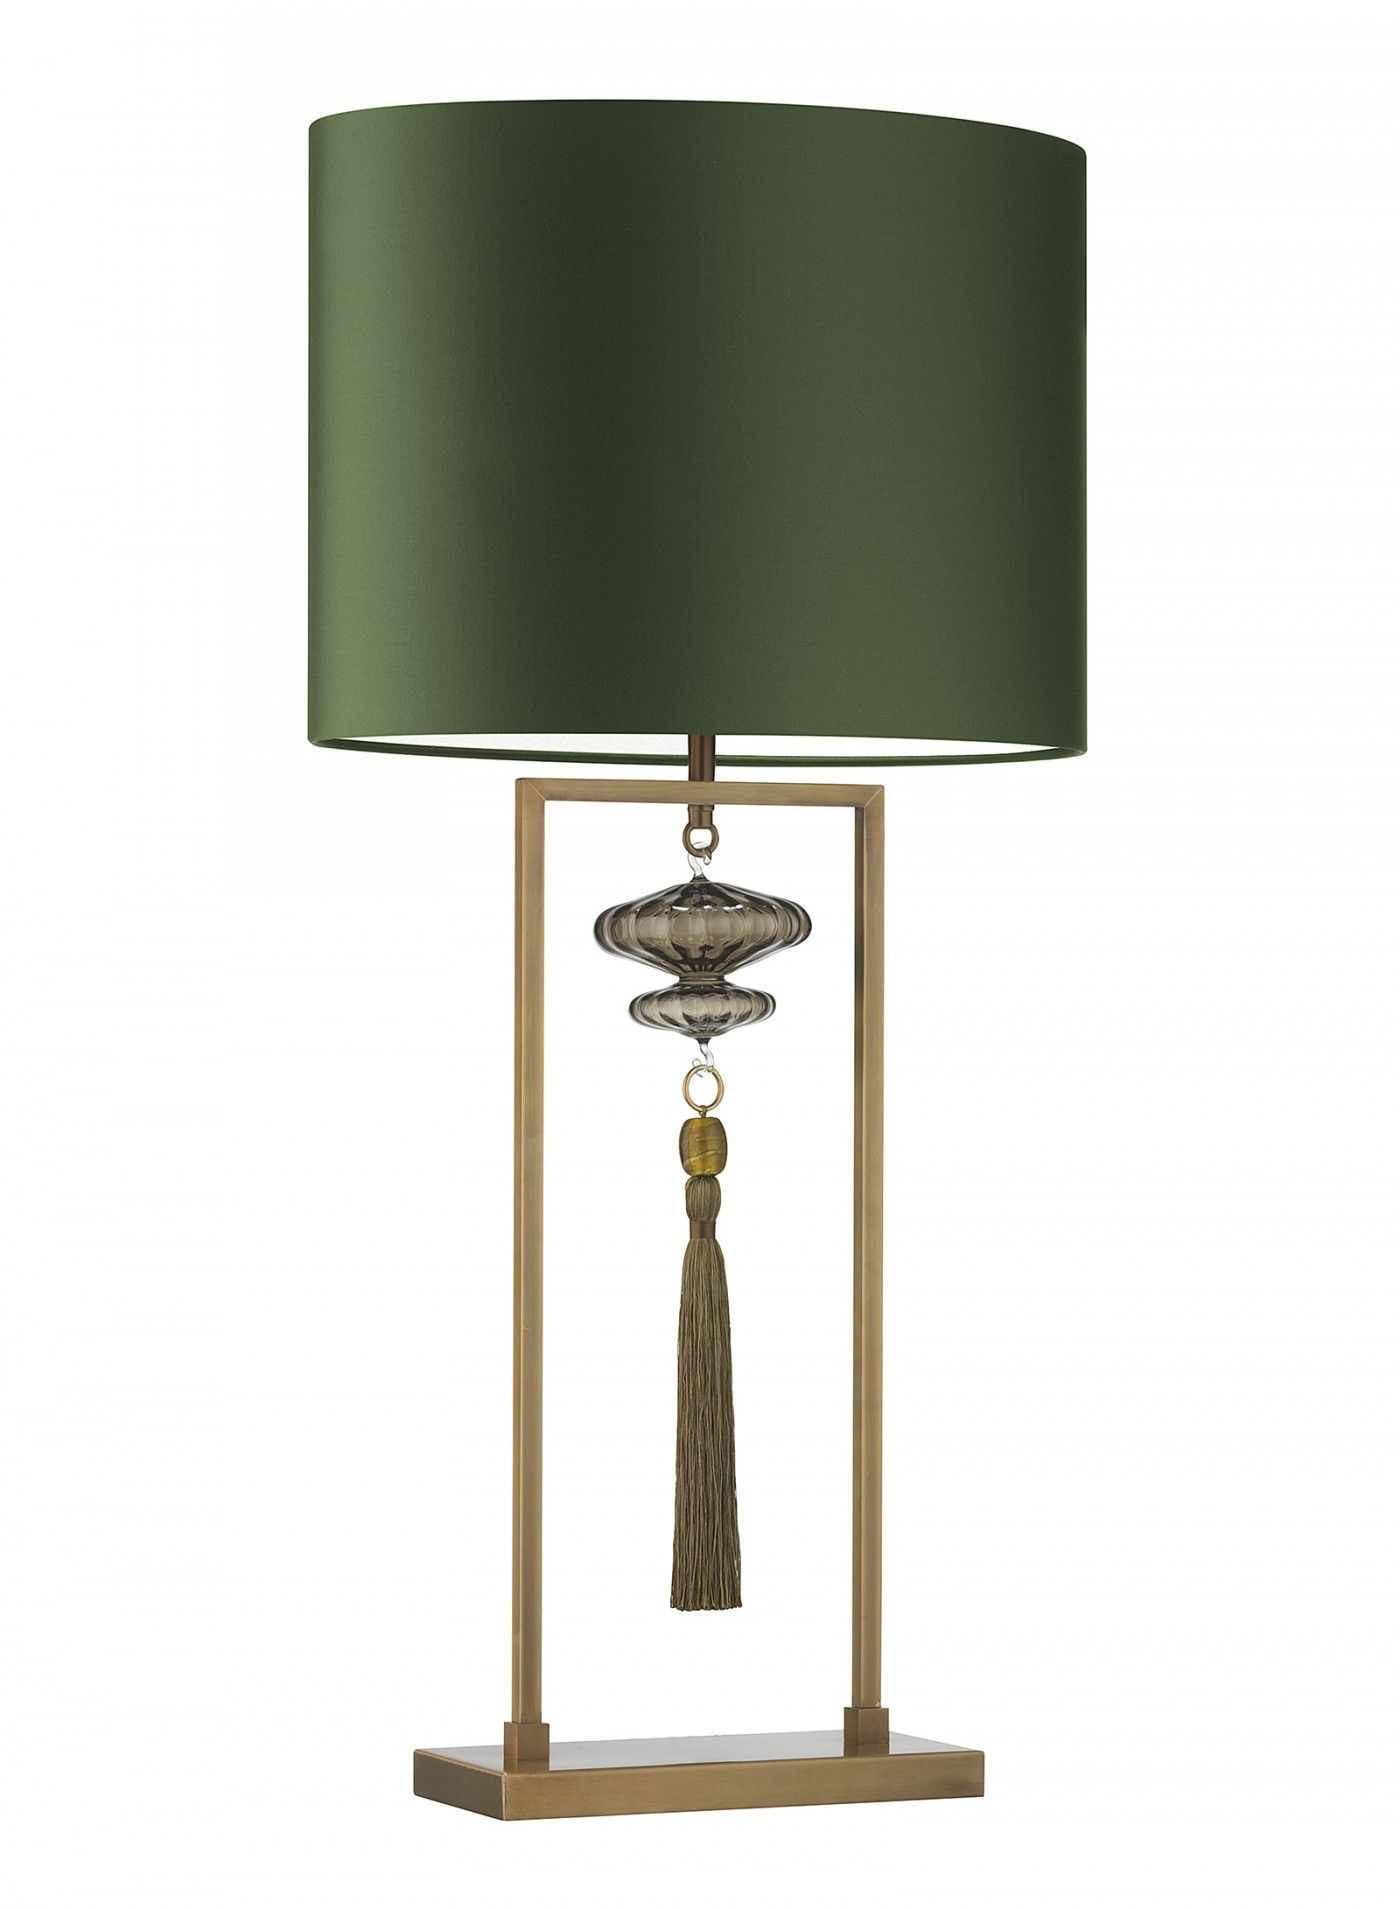 Constance Large Antique Brass Table Lamp Heathfield Co Green Table Lamp Table Lamp Brass Table Lamps